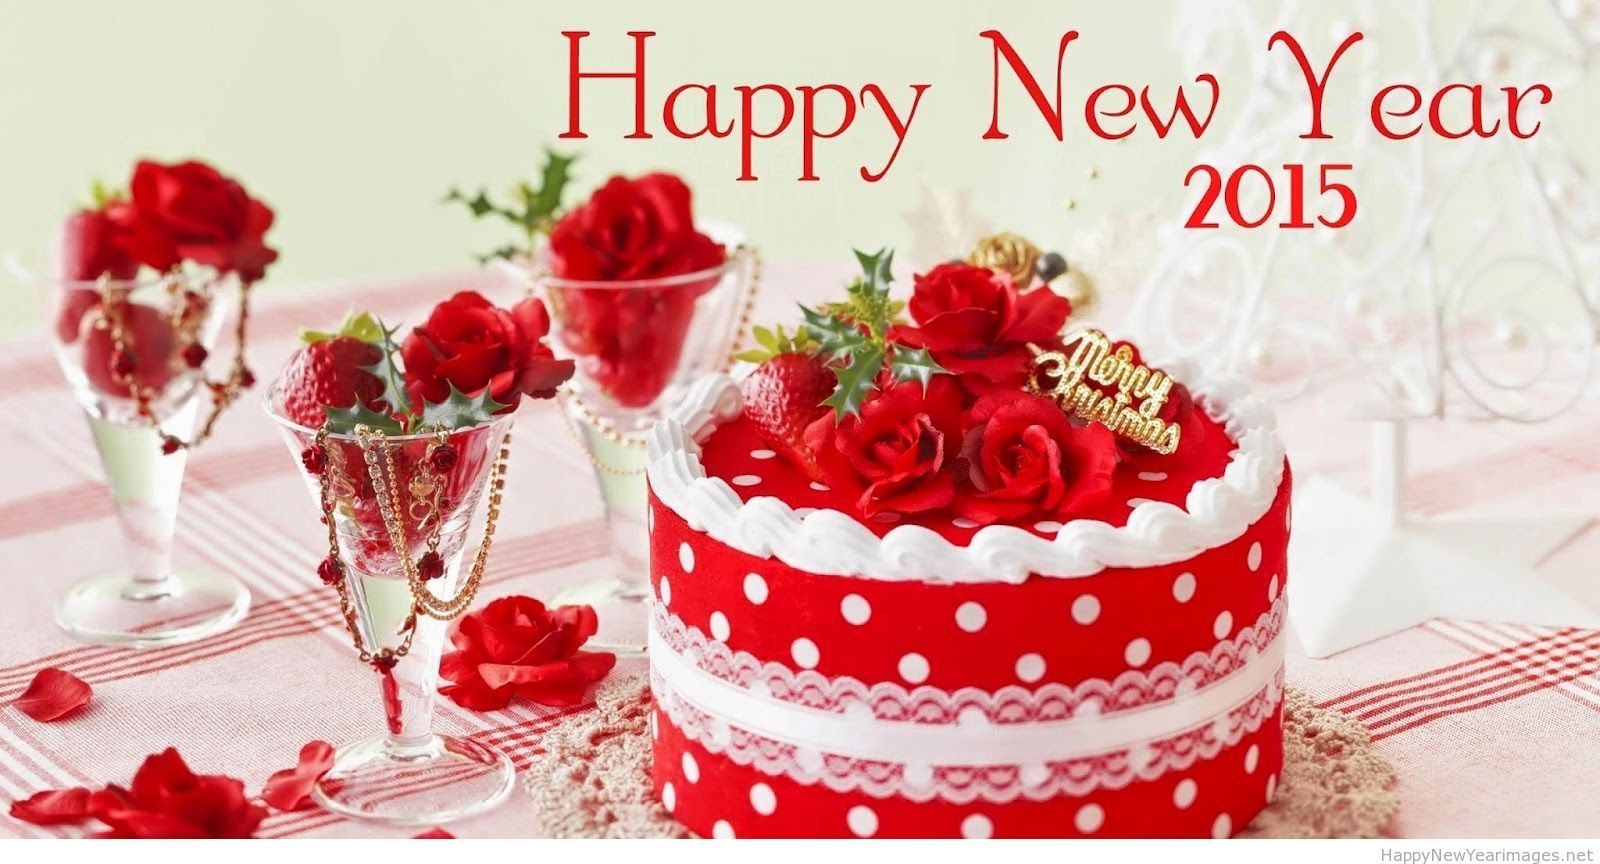 New Year 2015 Design Cake Hd Pictures Images Food Pinterest Hd